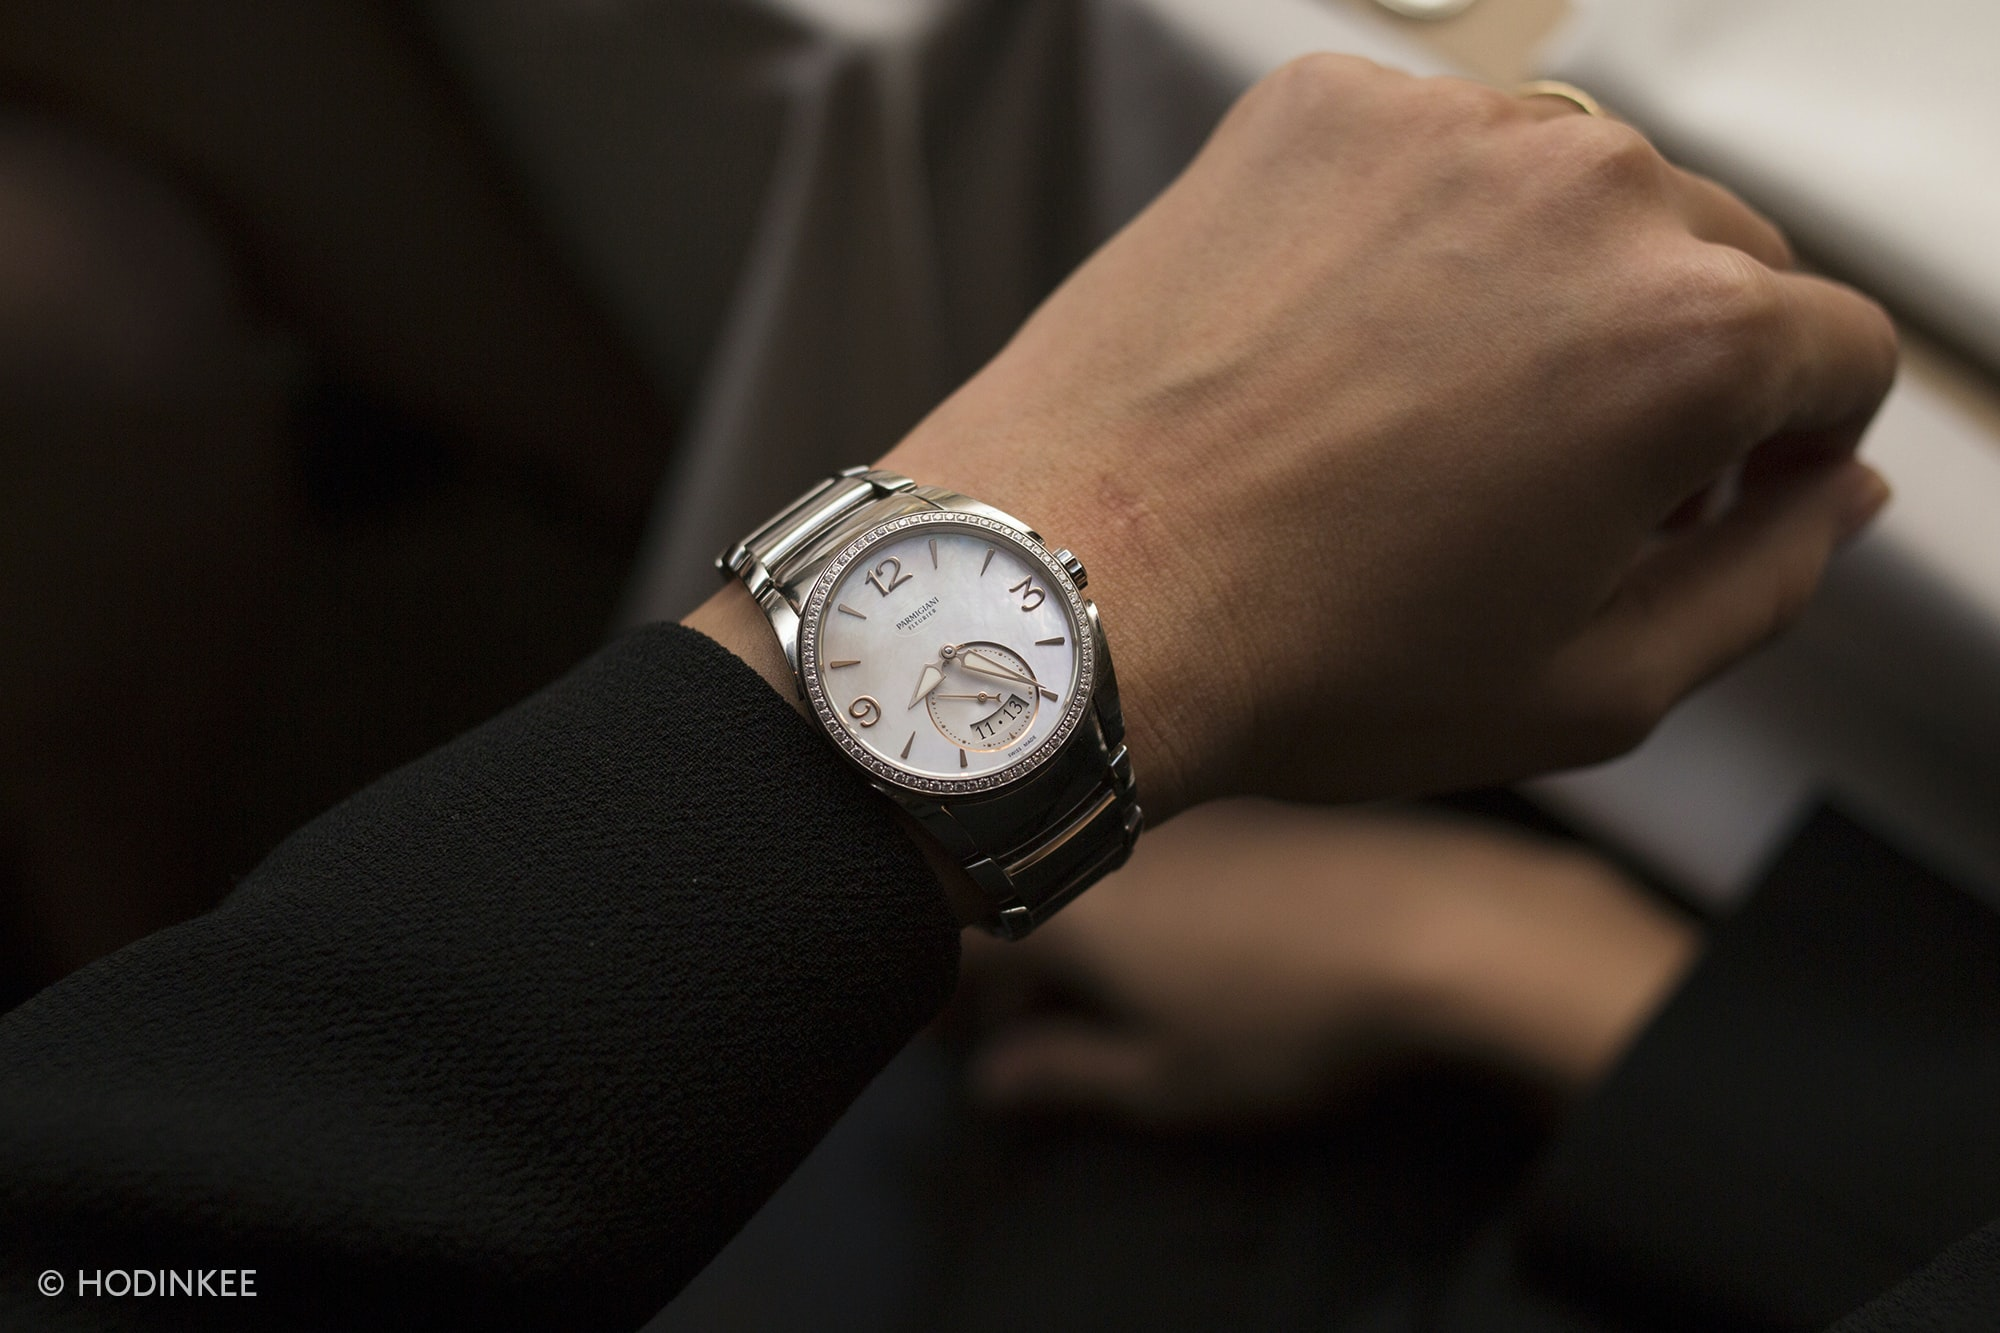 The Tonda Metropolitaine. Photo Report: A Collectors' Dinner With Parmigiani Fleurier Photo Report: A Collectors' Dinner With Parmigiani Fleurier 20010732 copy